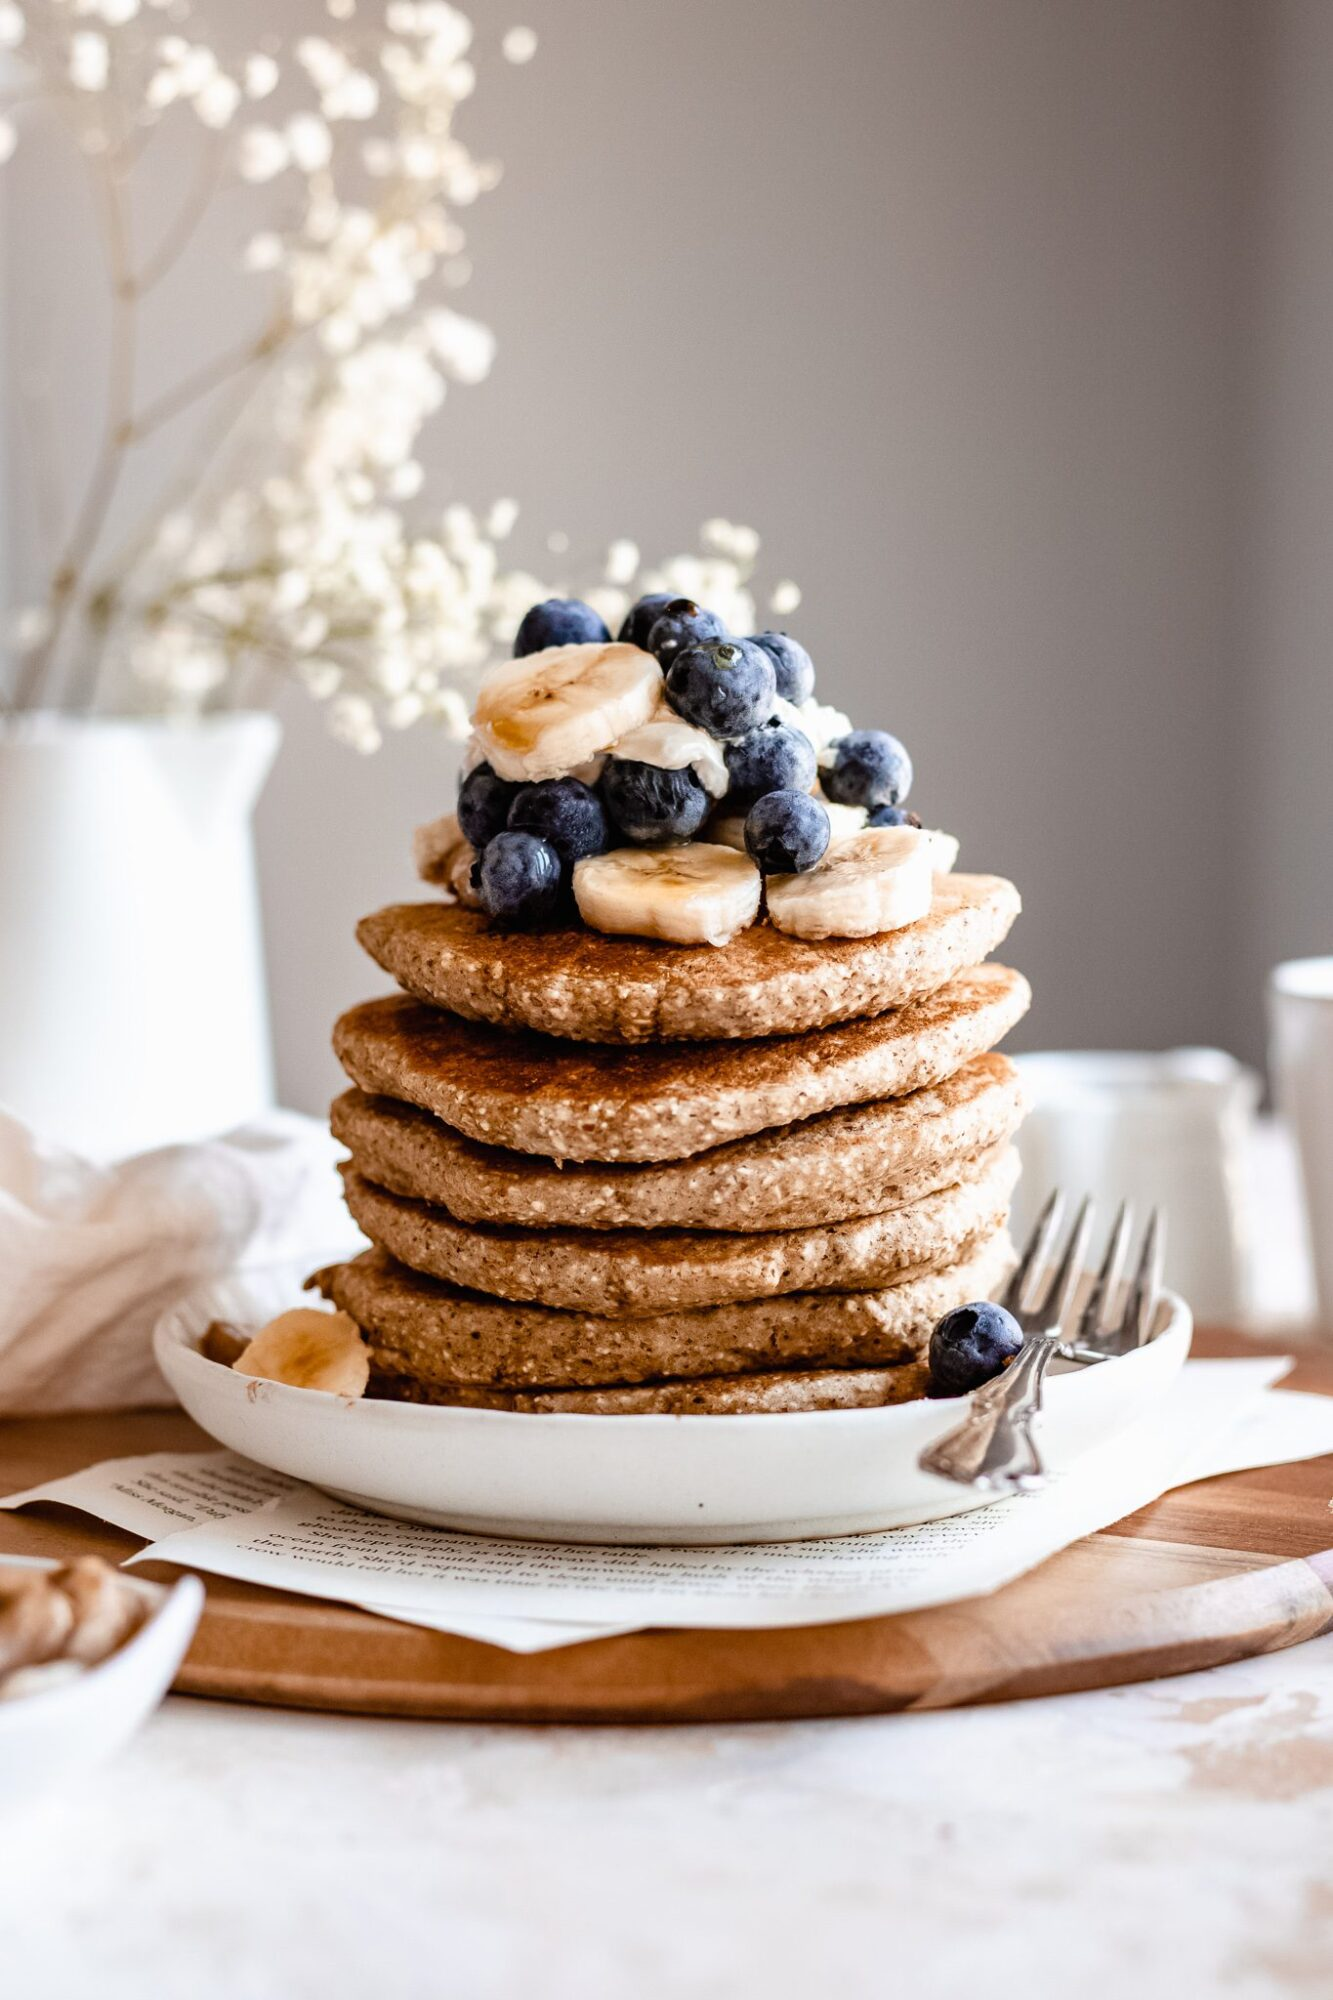 stack of fluffy banana oatmeal pancakes on wooden board with blueberries and bananas